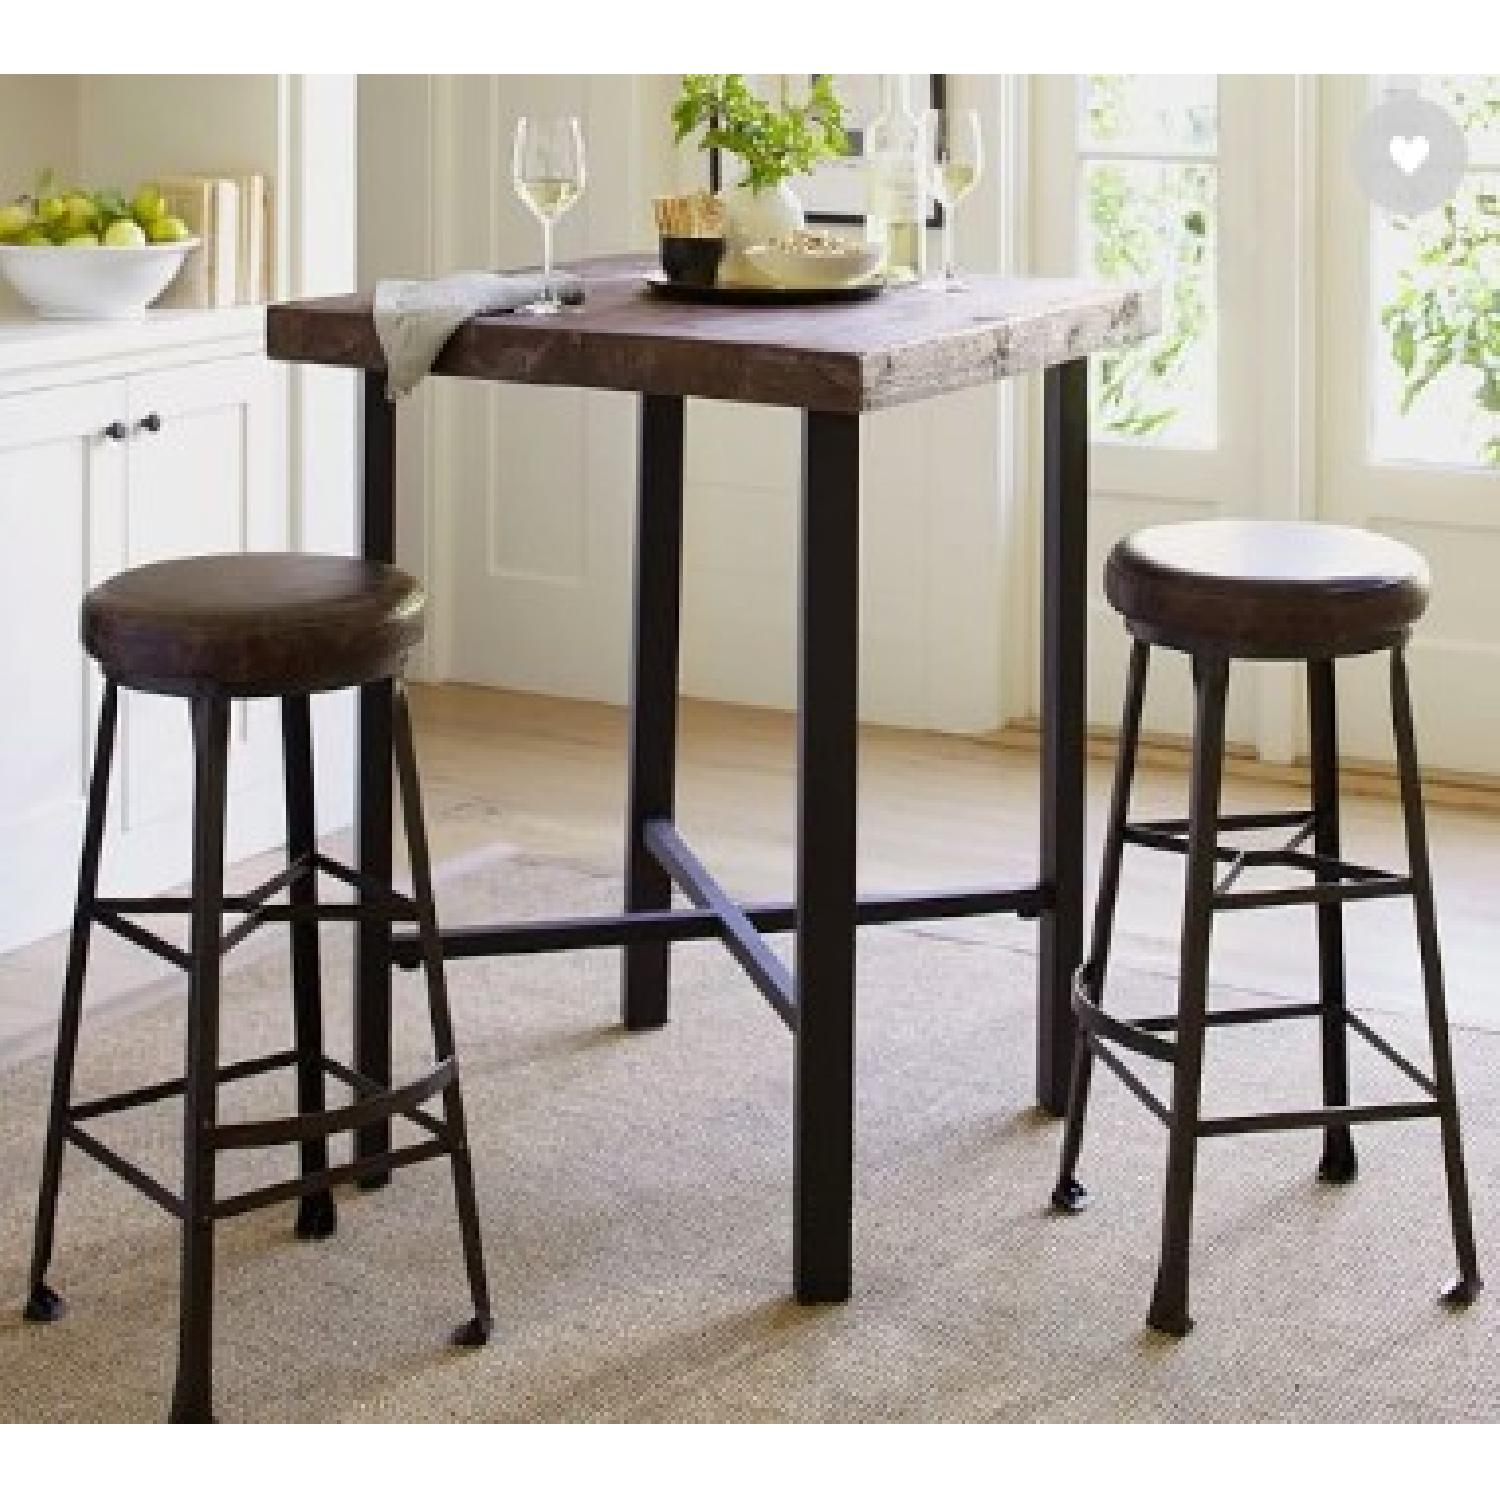 Pottery Barn Griffin Bar Table W/ 4 Stools – Aptdeco In Most Popular Griffin Reclaimed Wood Bar Height Tables (View 25 of 25)